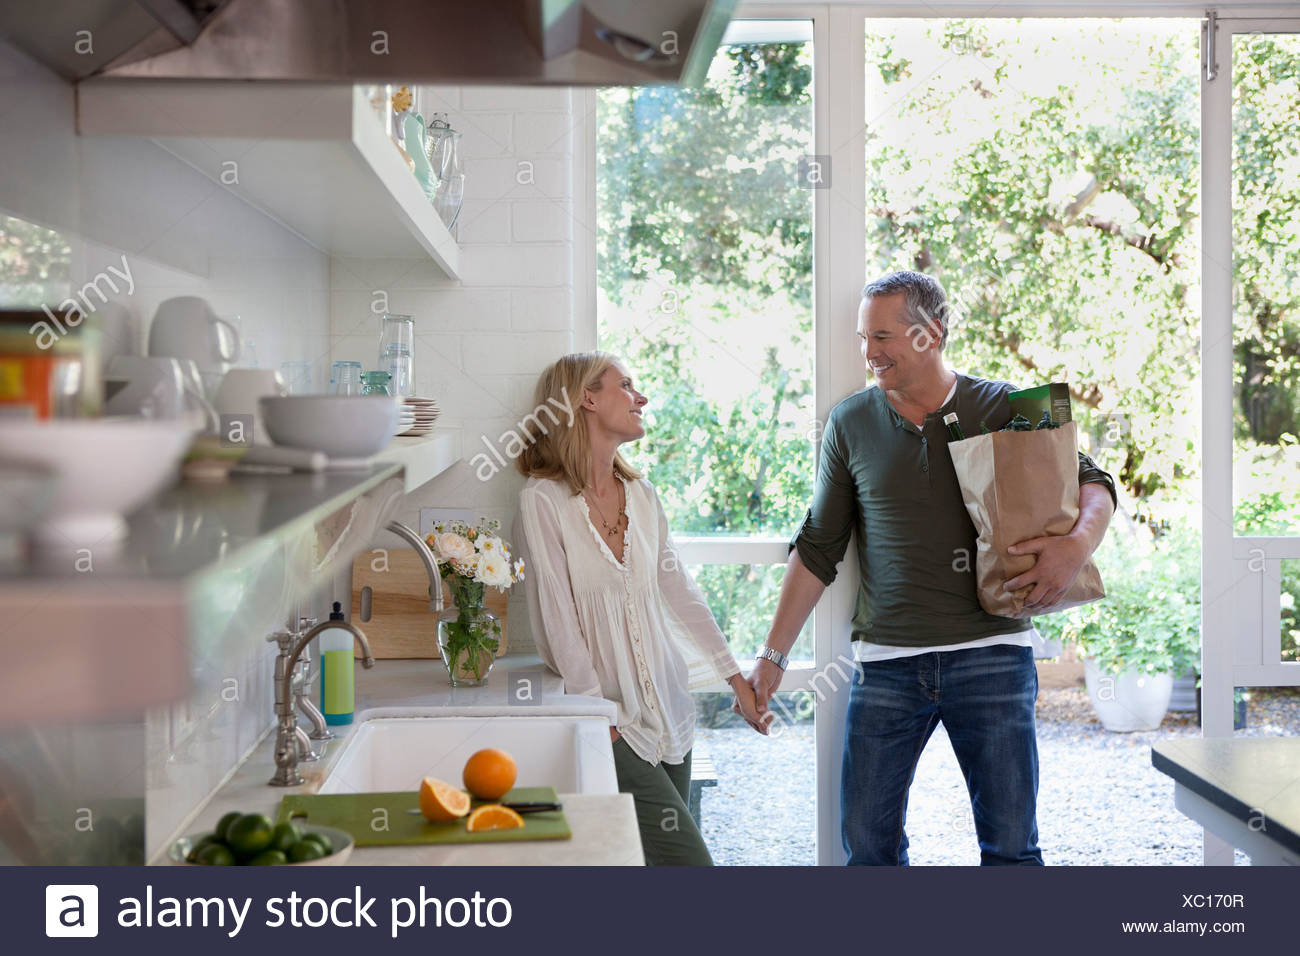 Couple holding hands in kitchen Stock Photo